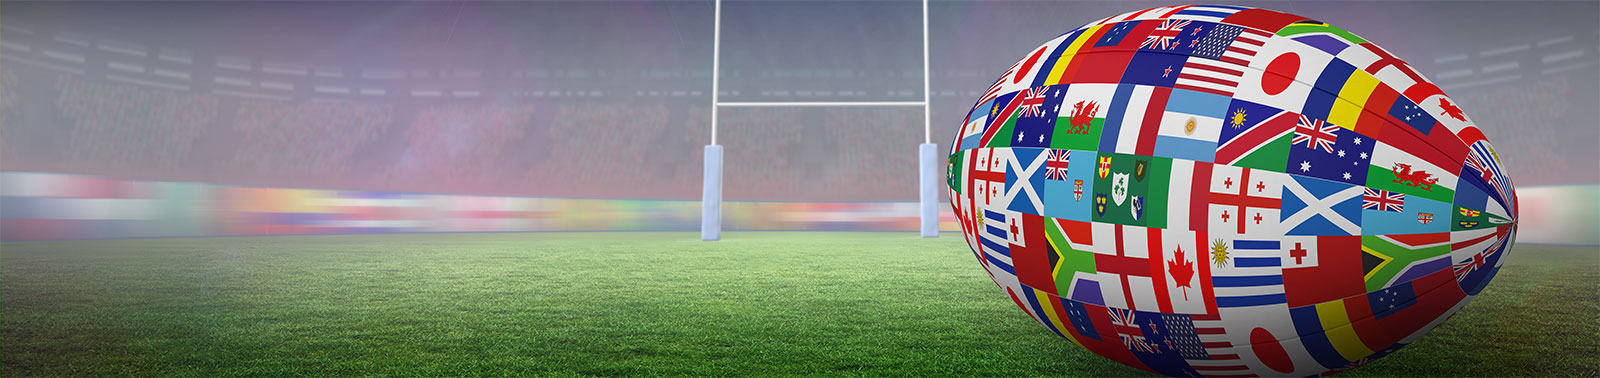 World-Cup-rugby-ball-on-field.jpg